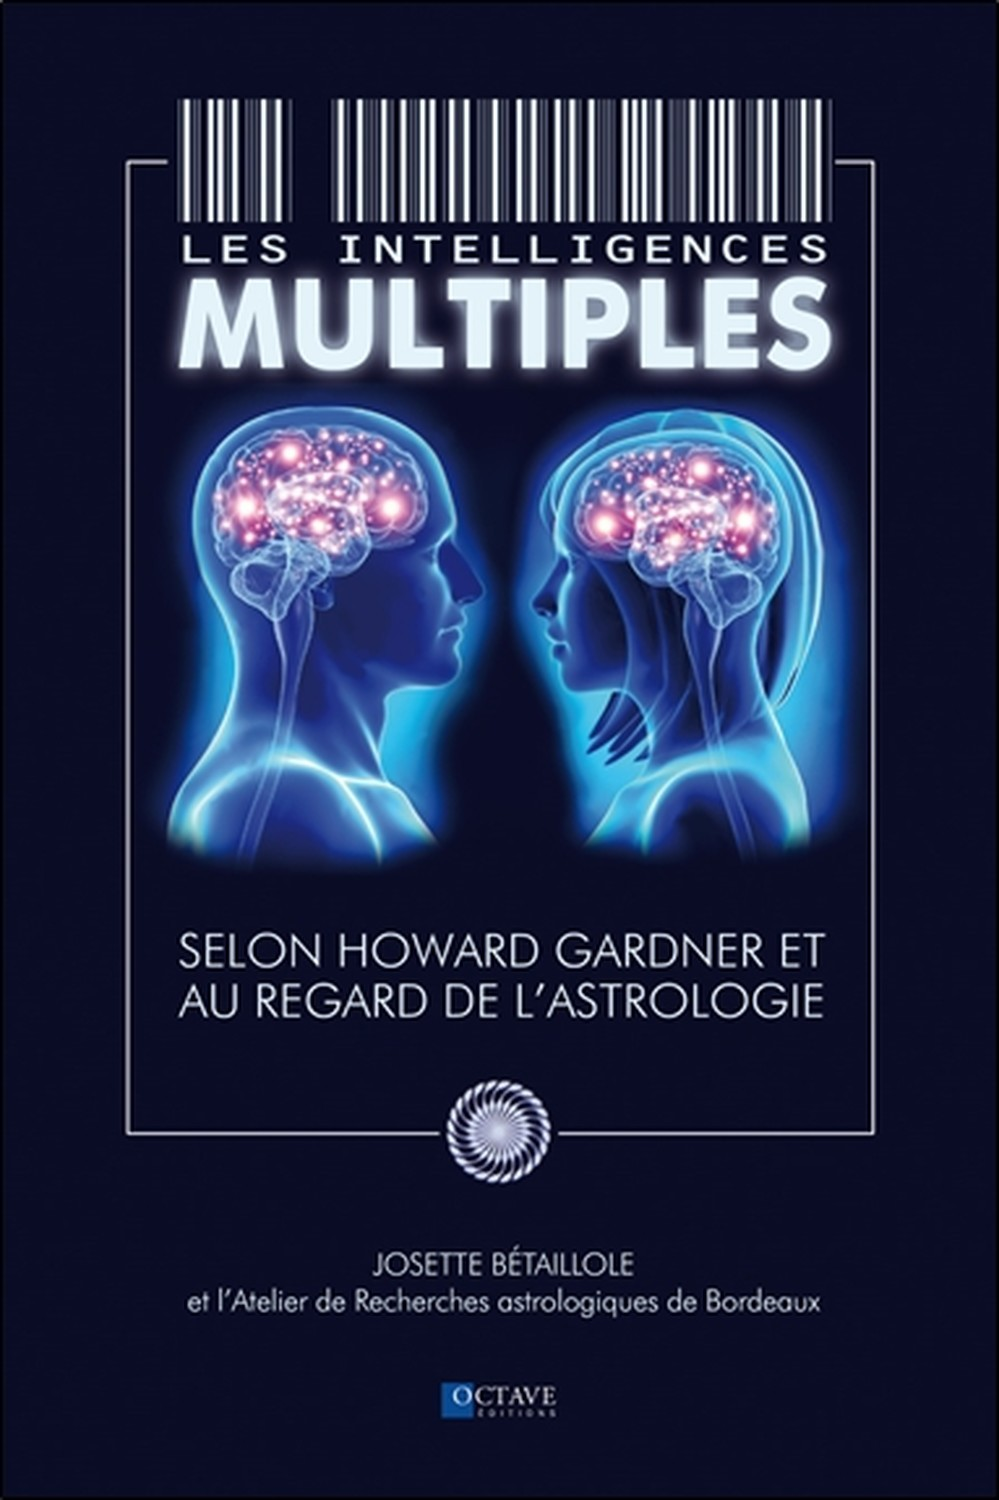 LES INTELLIGENCES MULTIPLES - SELON HOWARD GARDNER ET AU REGARD DE L'ASTROLOGIE